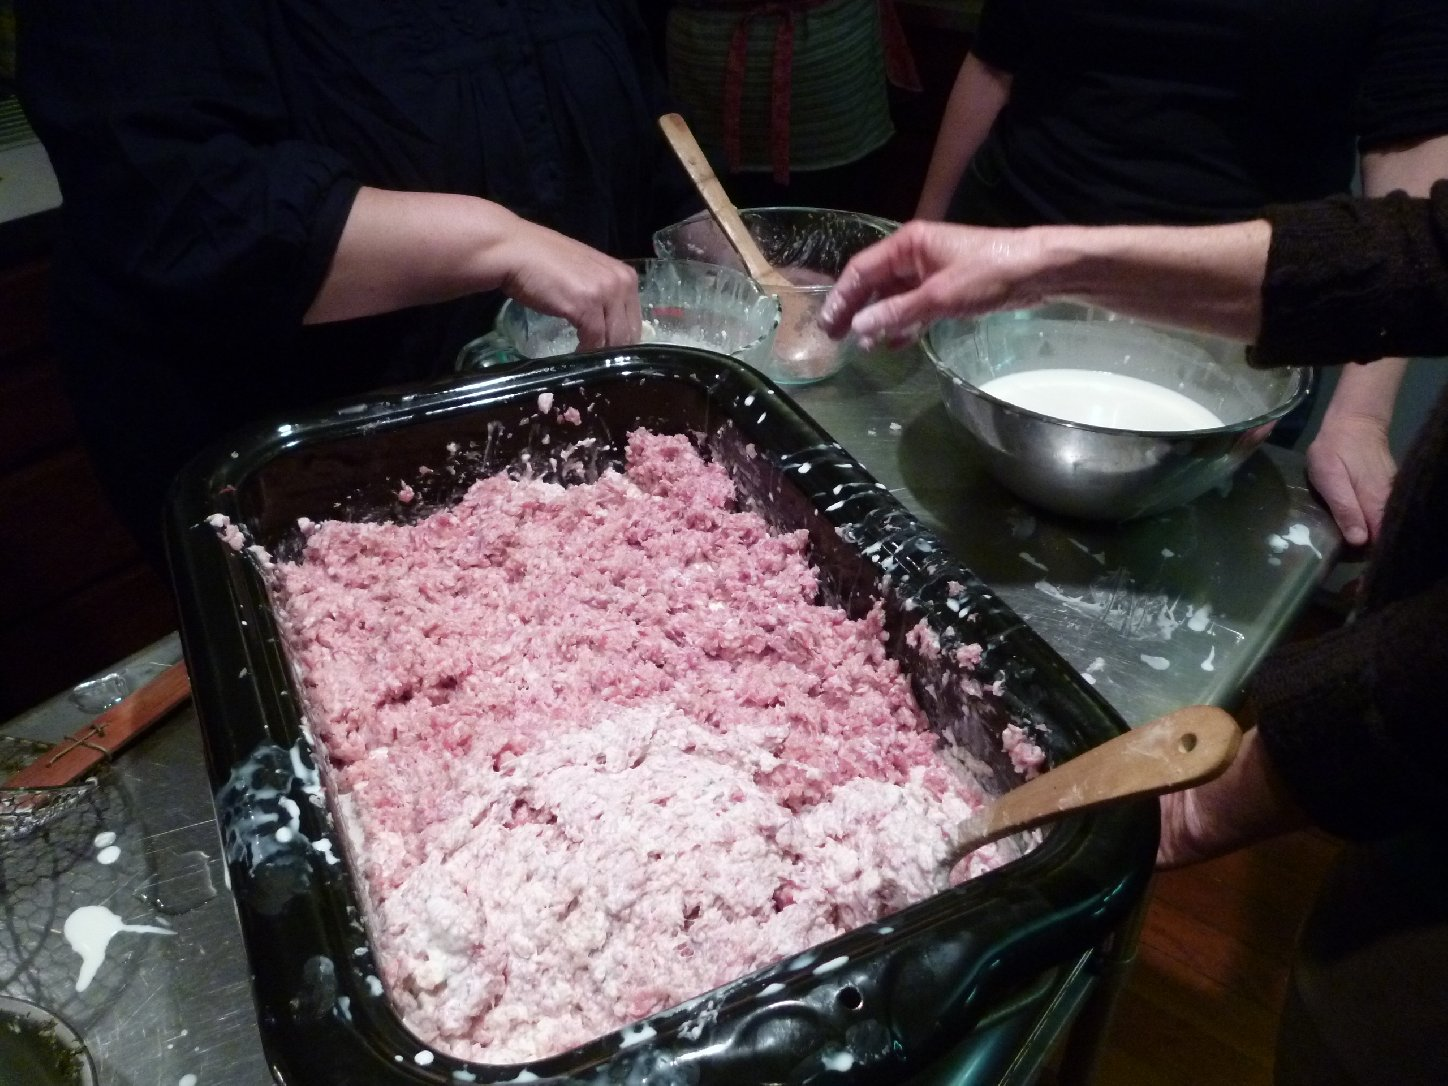 Mixing the sausage with cream and bread crumbs. Photo: Stephanie Rosenbaum